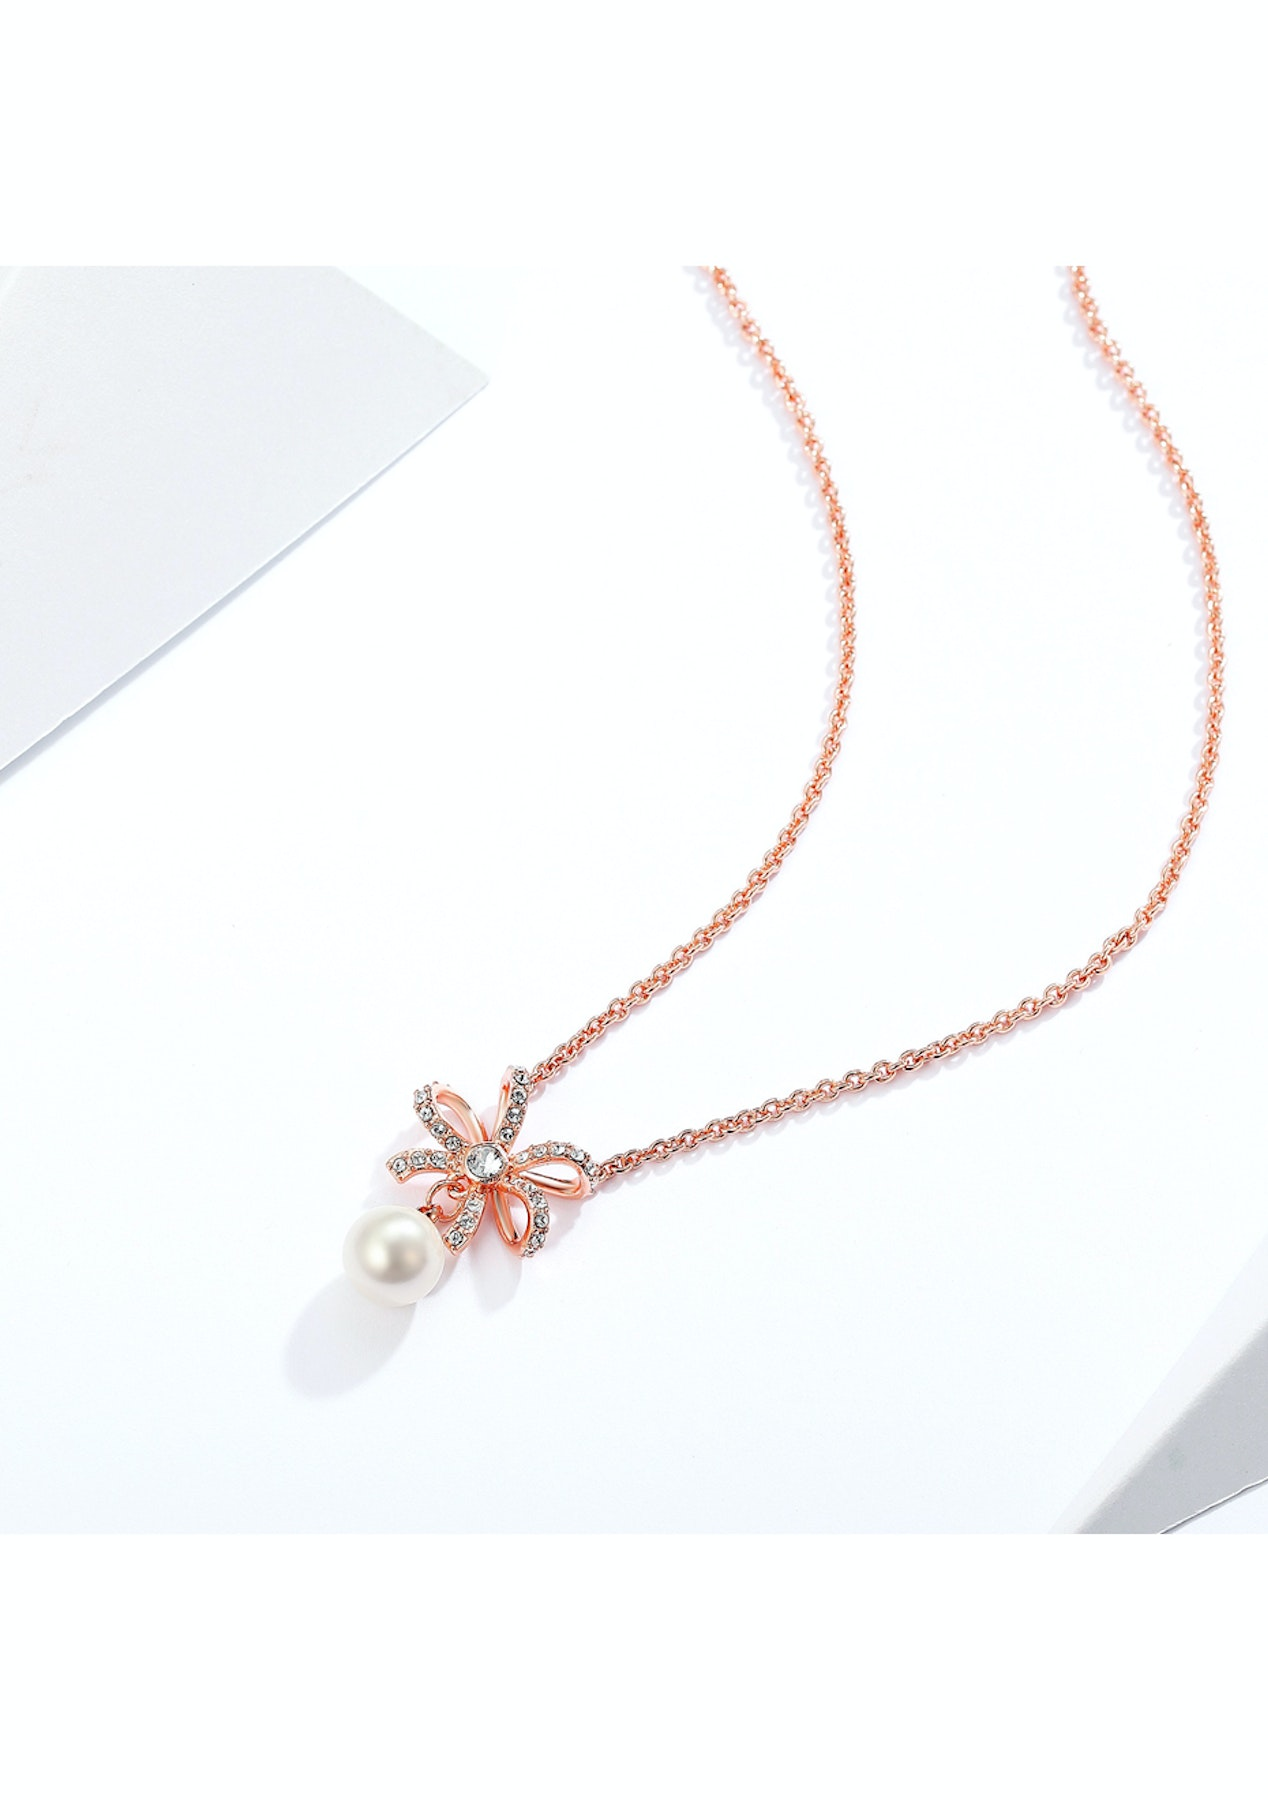 3807e01168292 Krystal Cotoure - Ribbon Bow Pearl Necklace with Swarovski White Crystal  Pearl Rose Gold Plated